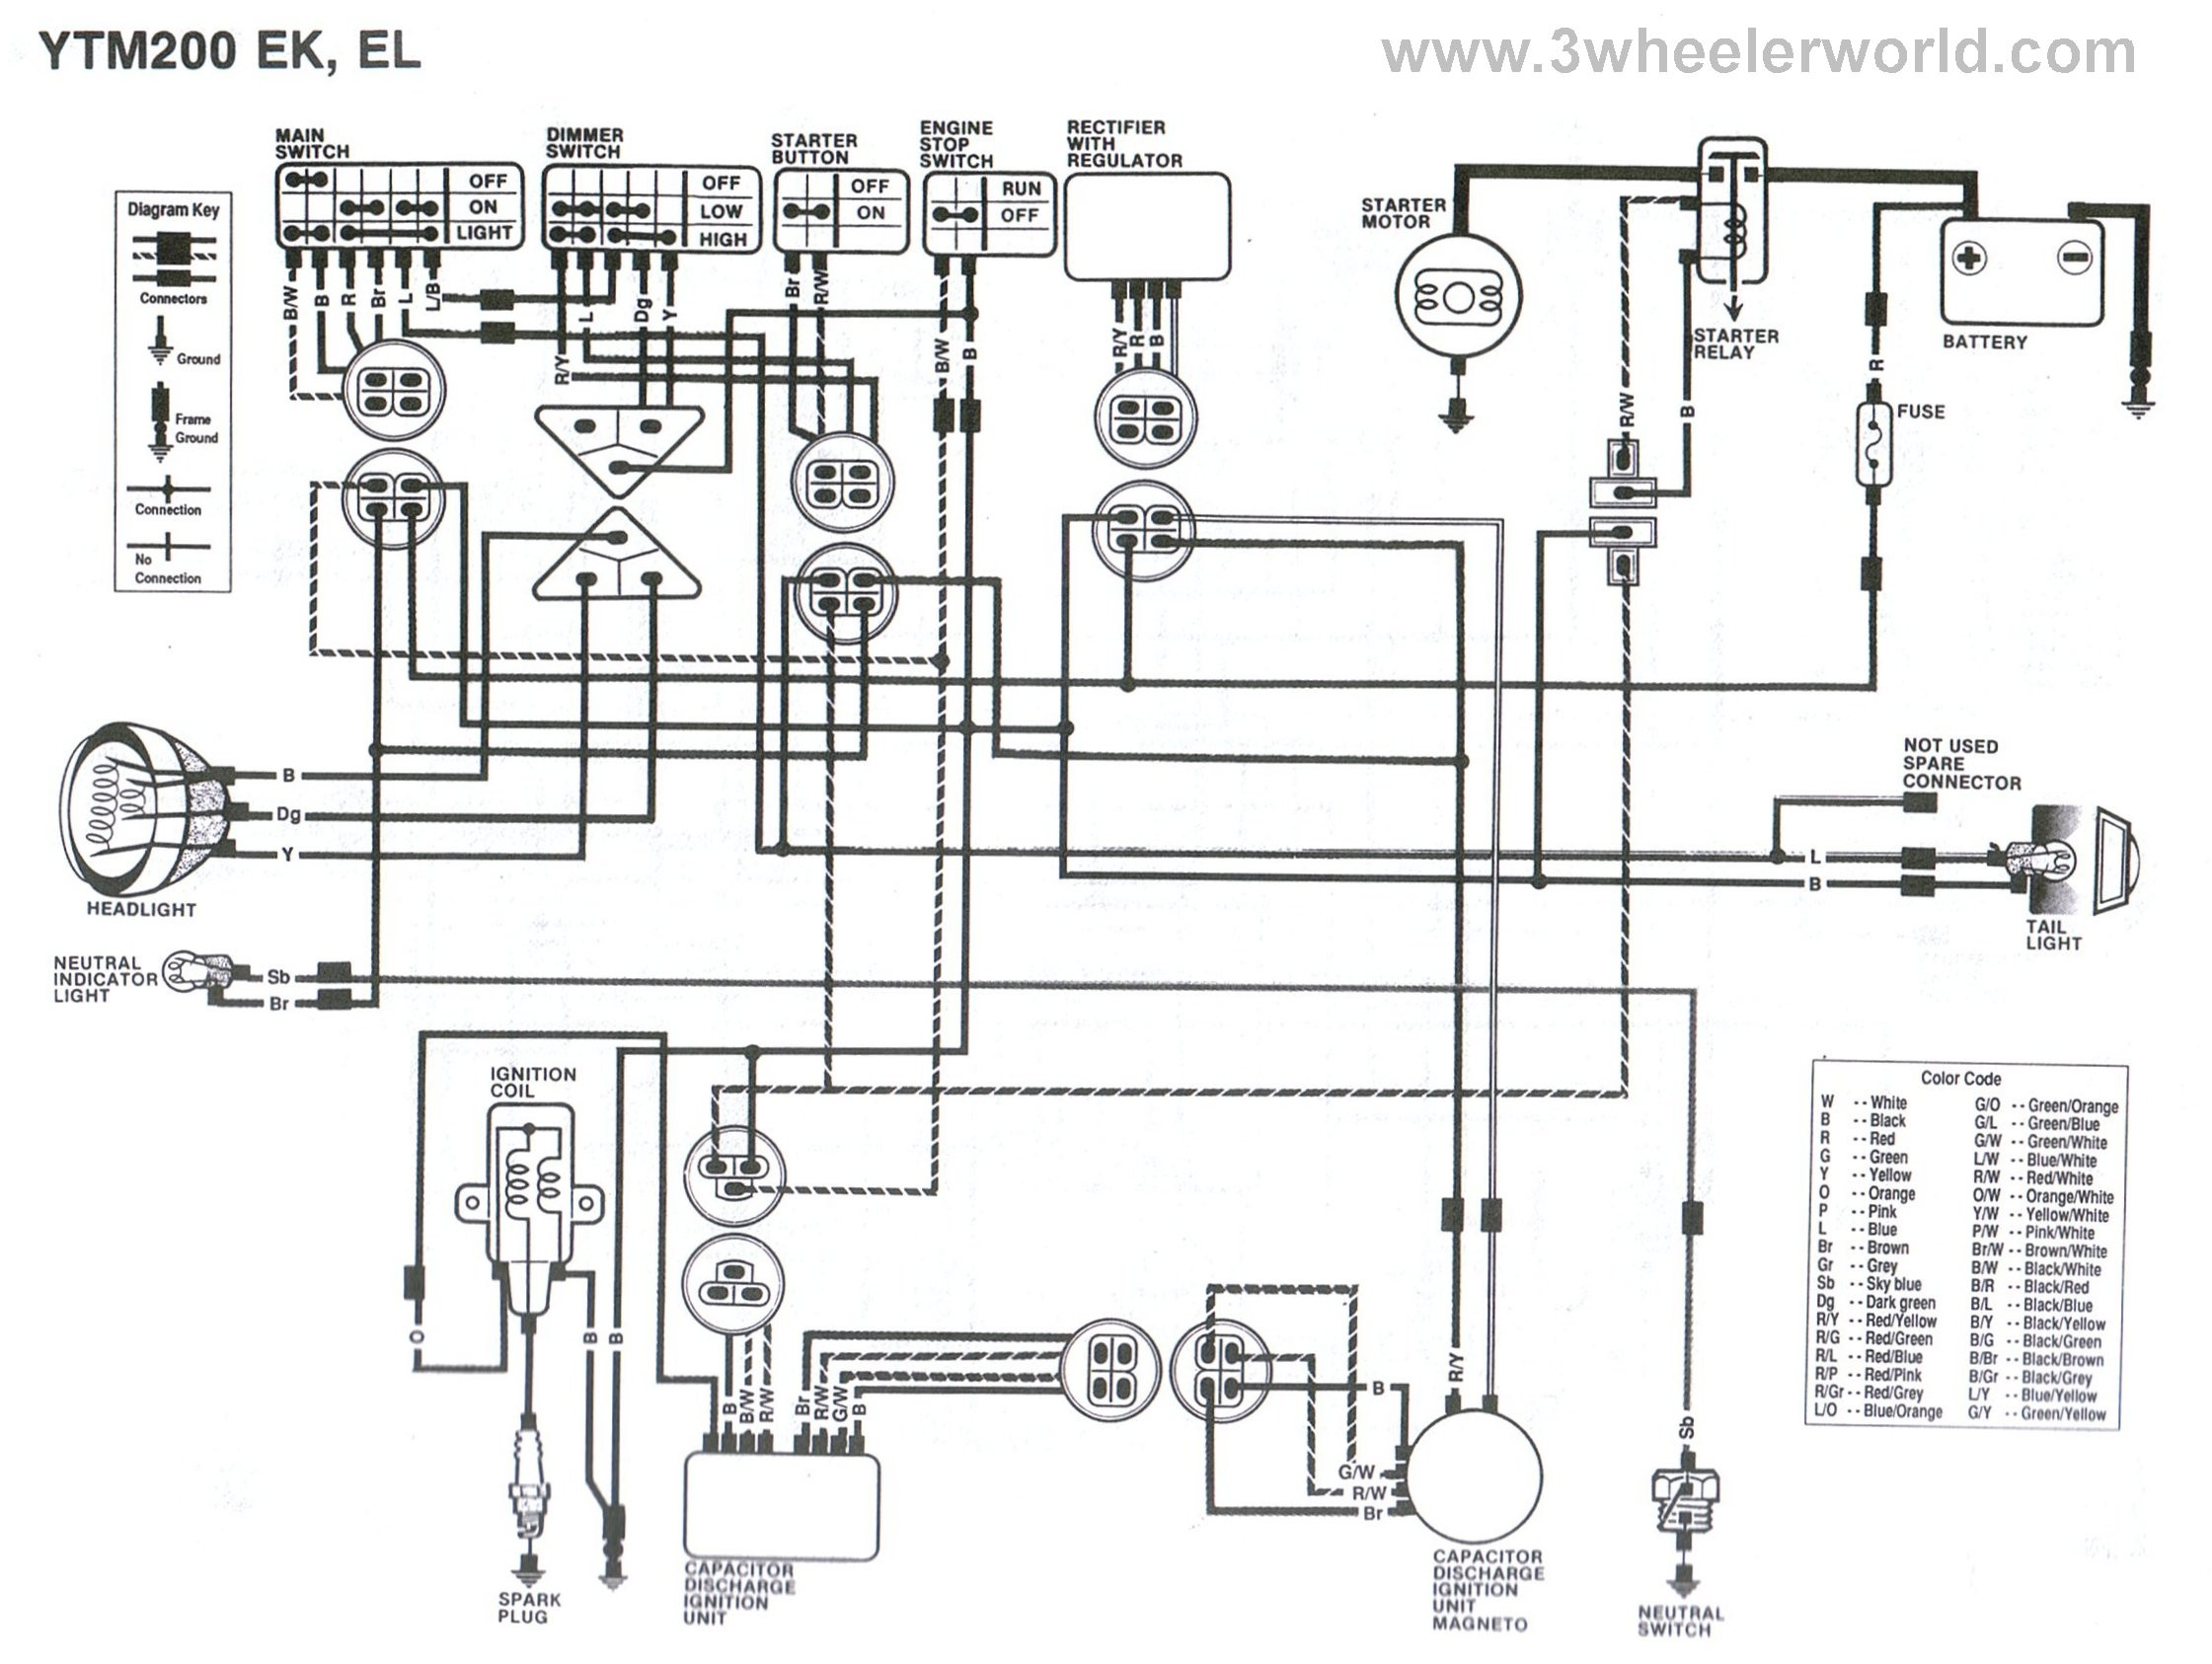 Electrical Wiring Diagram For A Yamaha Blaster - 7 Pin Truck Connector Wiring  Diagram - impalafuse.tukune.jeanjaures37.fr | Tw200 Wiring Diagram |  | Wiring Diagram Resource